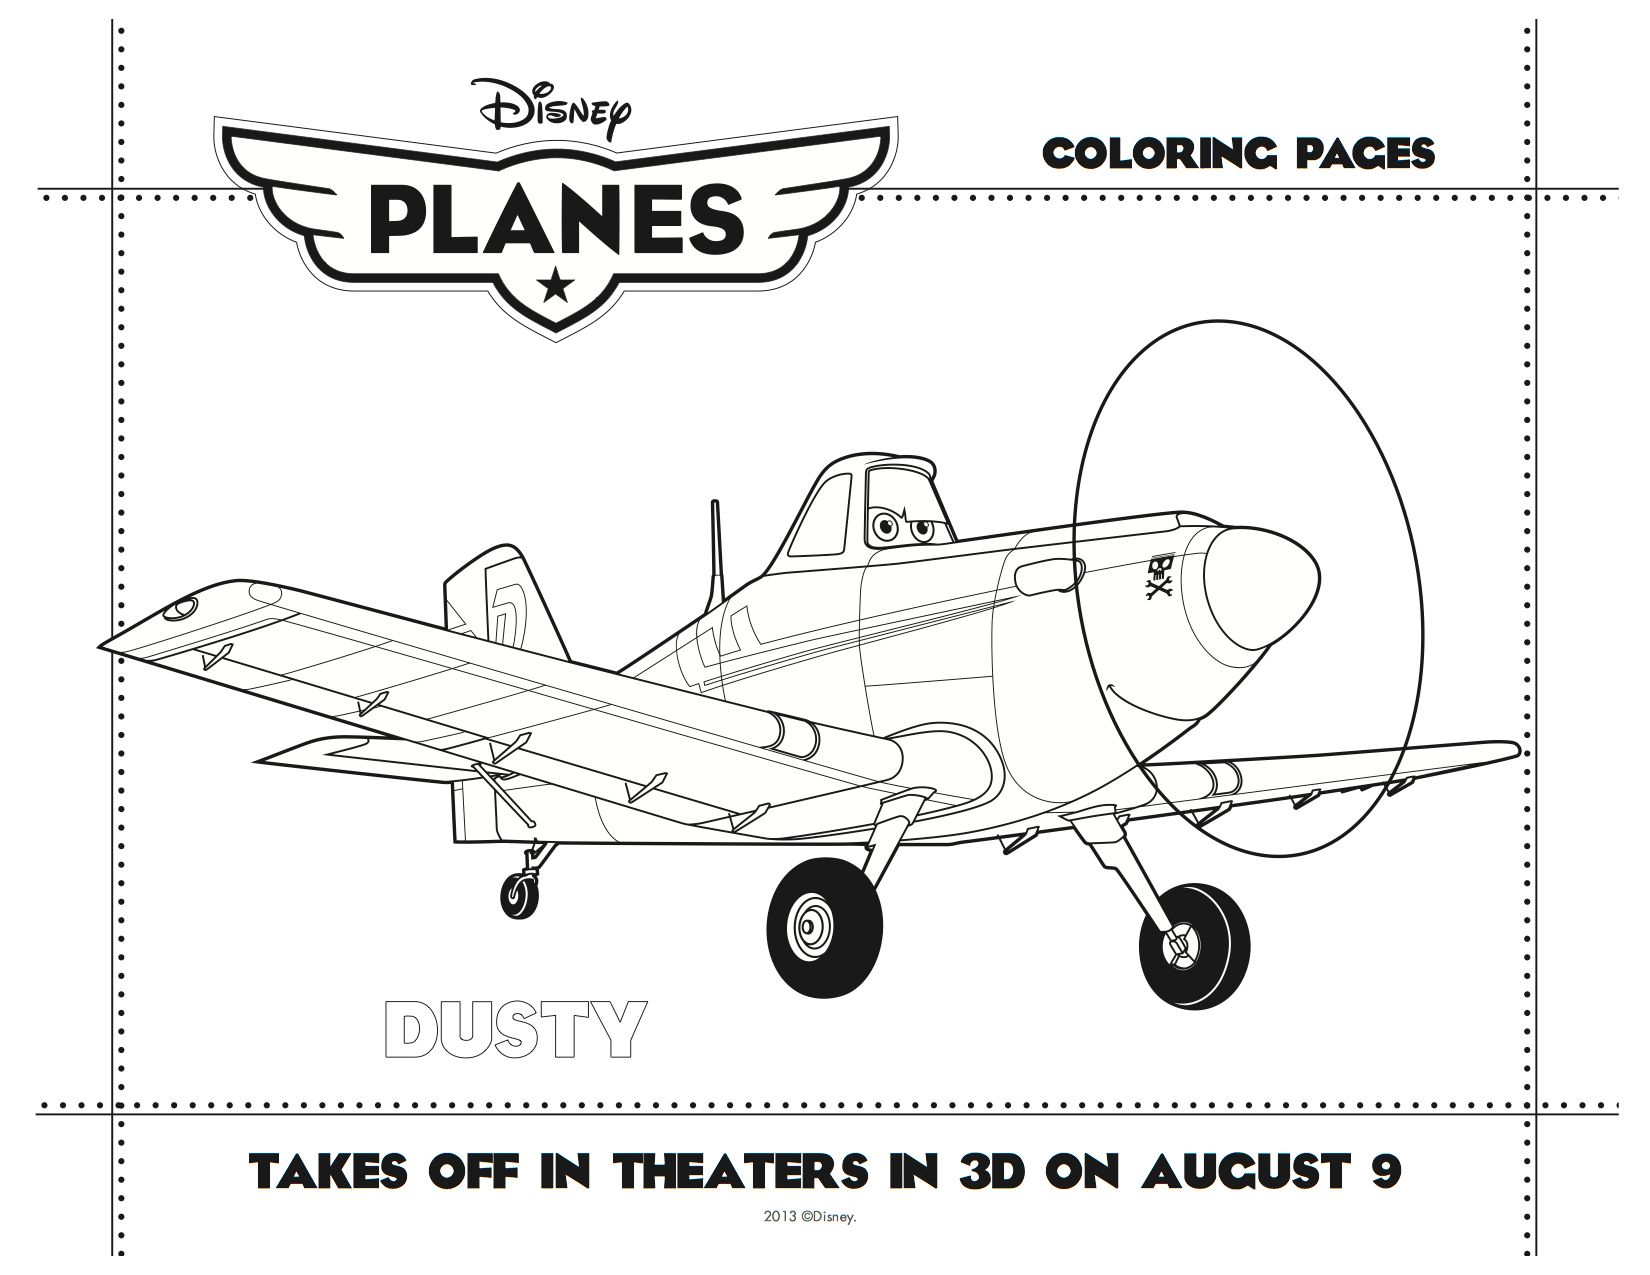 Free printable coloring pages airplanes - Free Printable Disney Planes Dusty Coloring Page For Kids